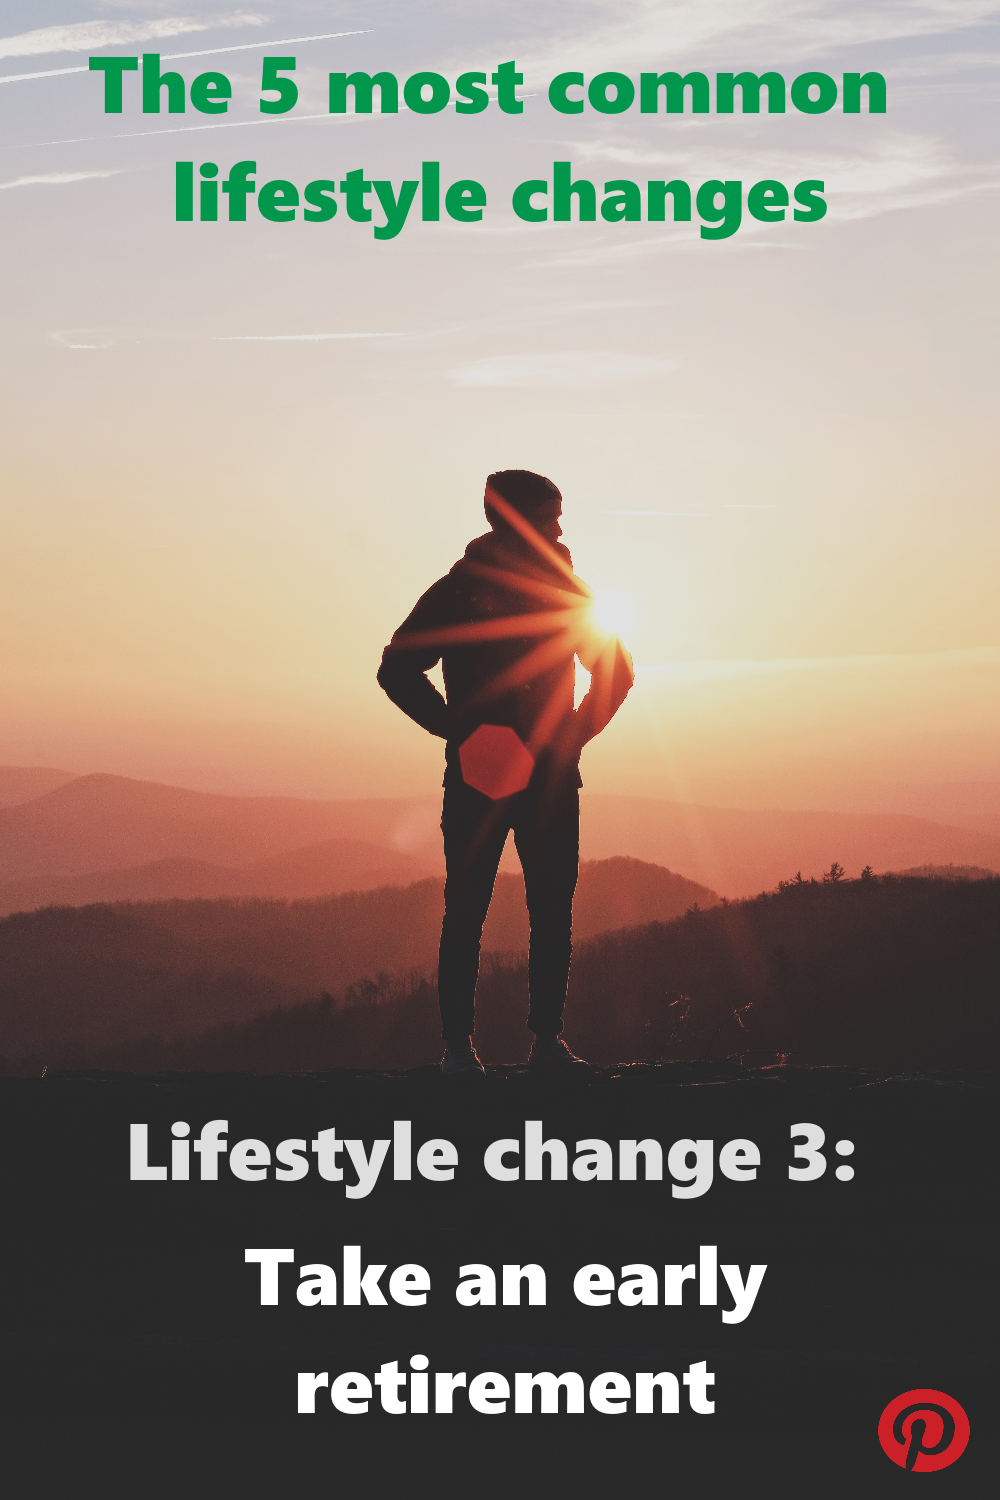 The 5 most common lifestyle changes - #3 Take an early retirement